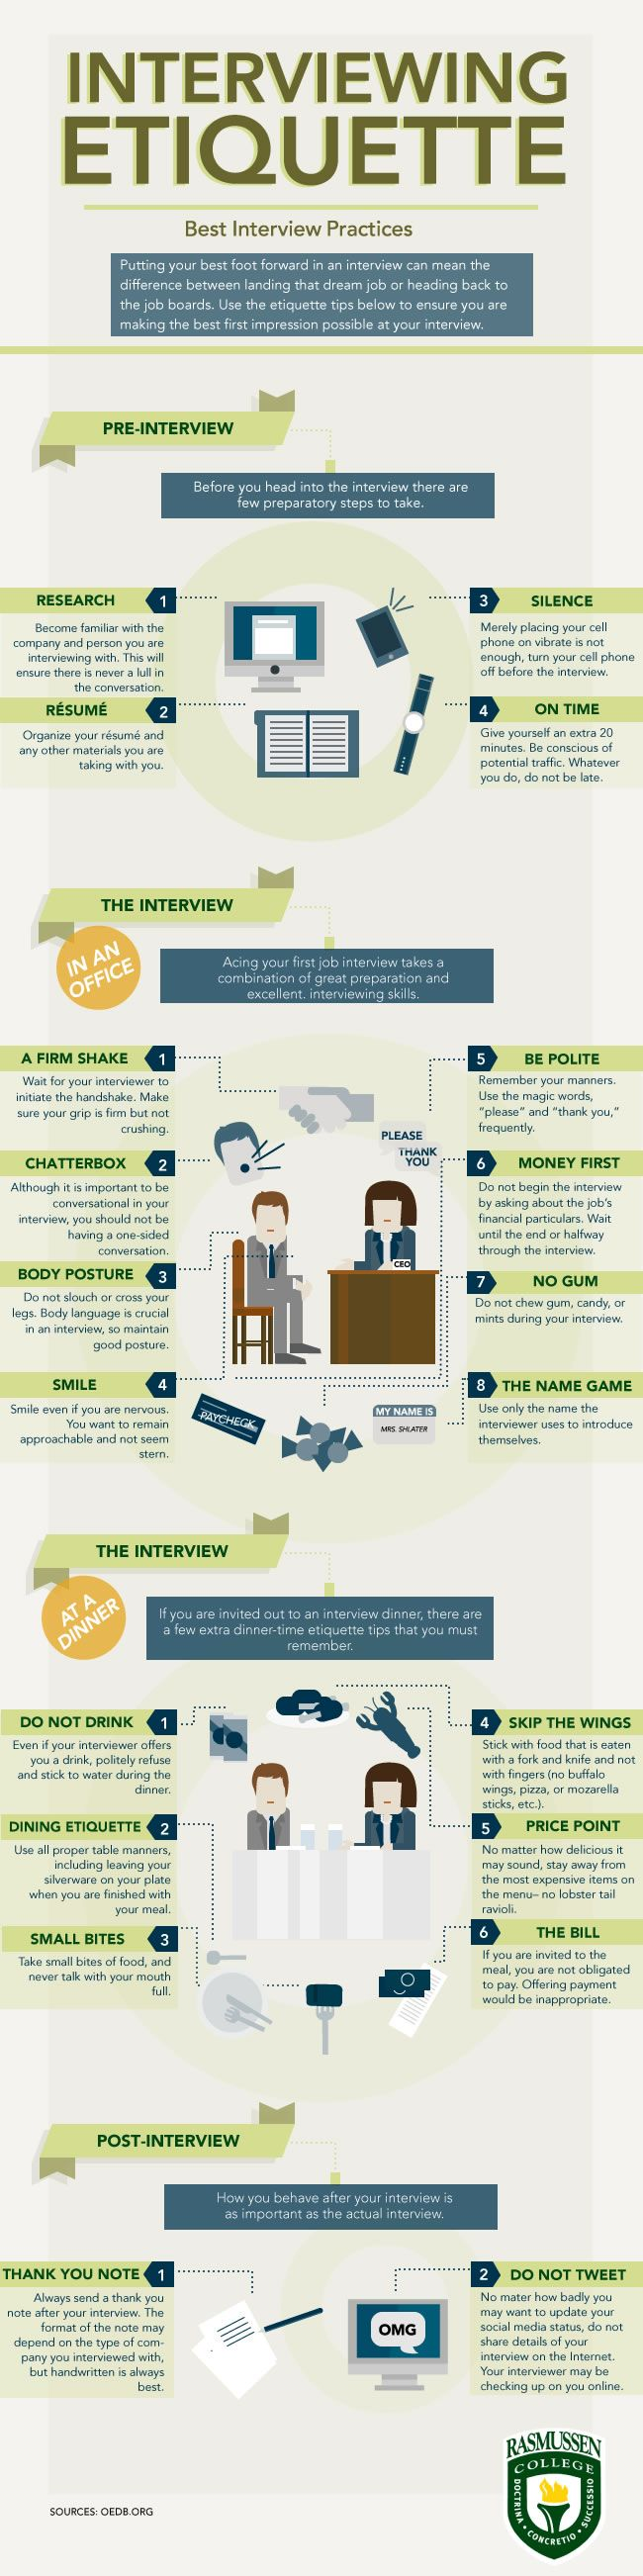 Interviewing Etiquette and Best Practices